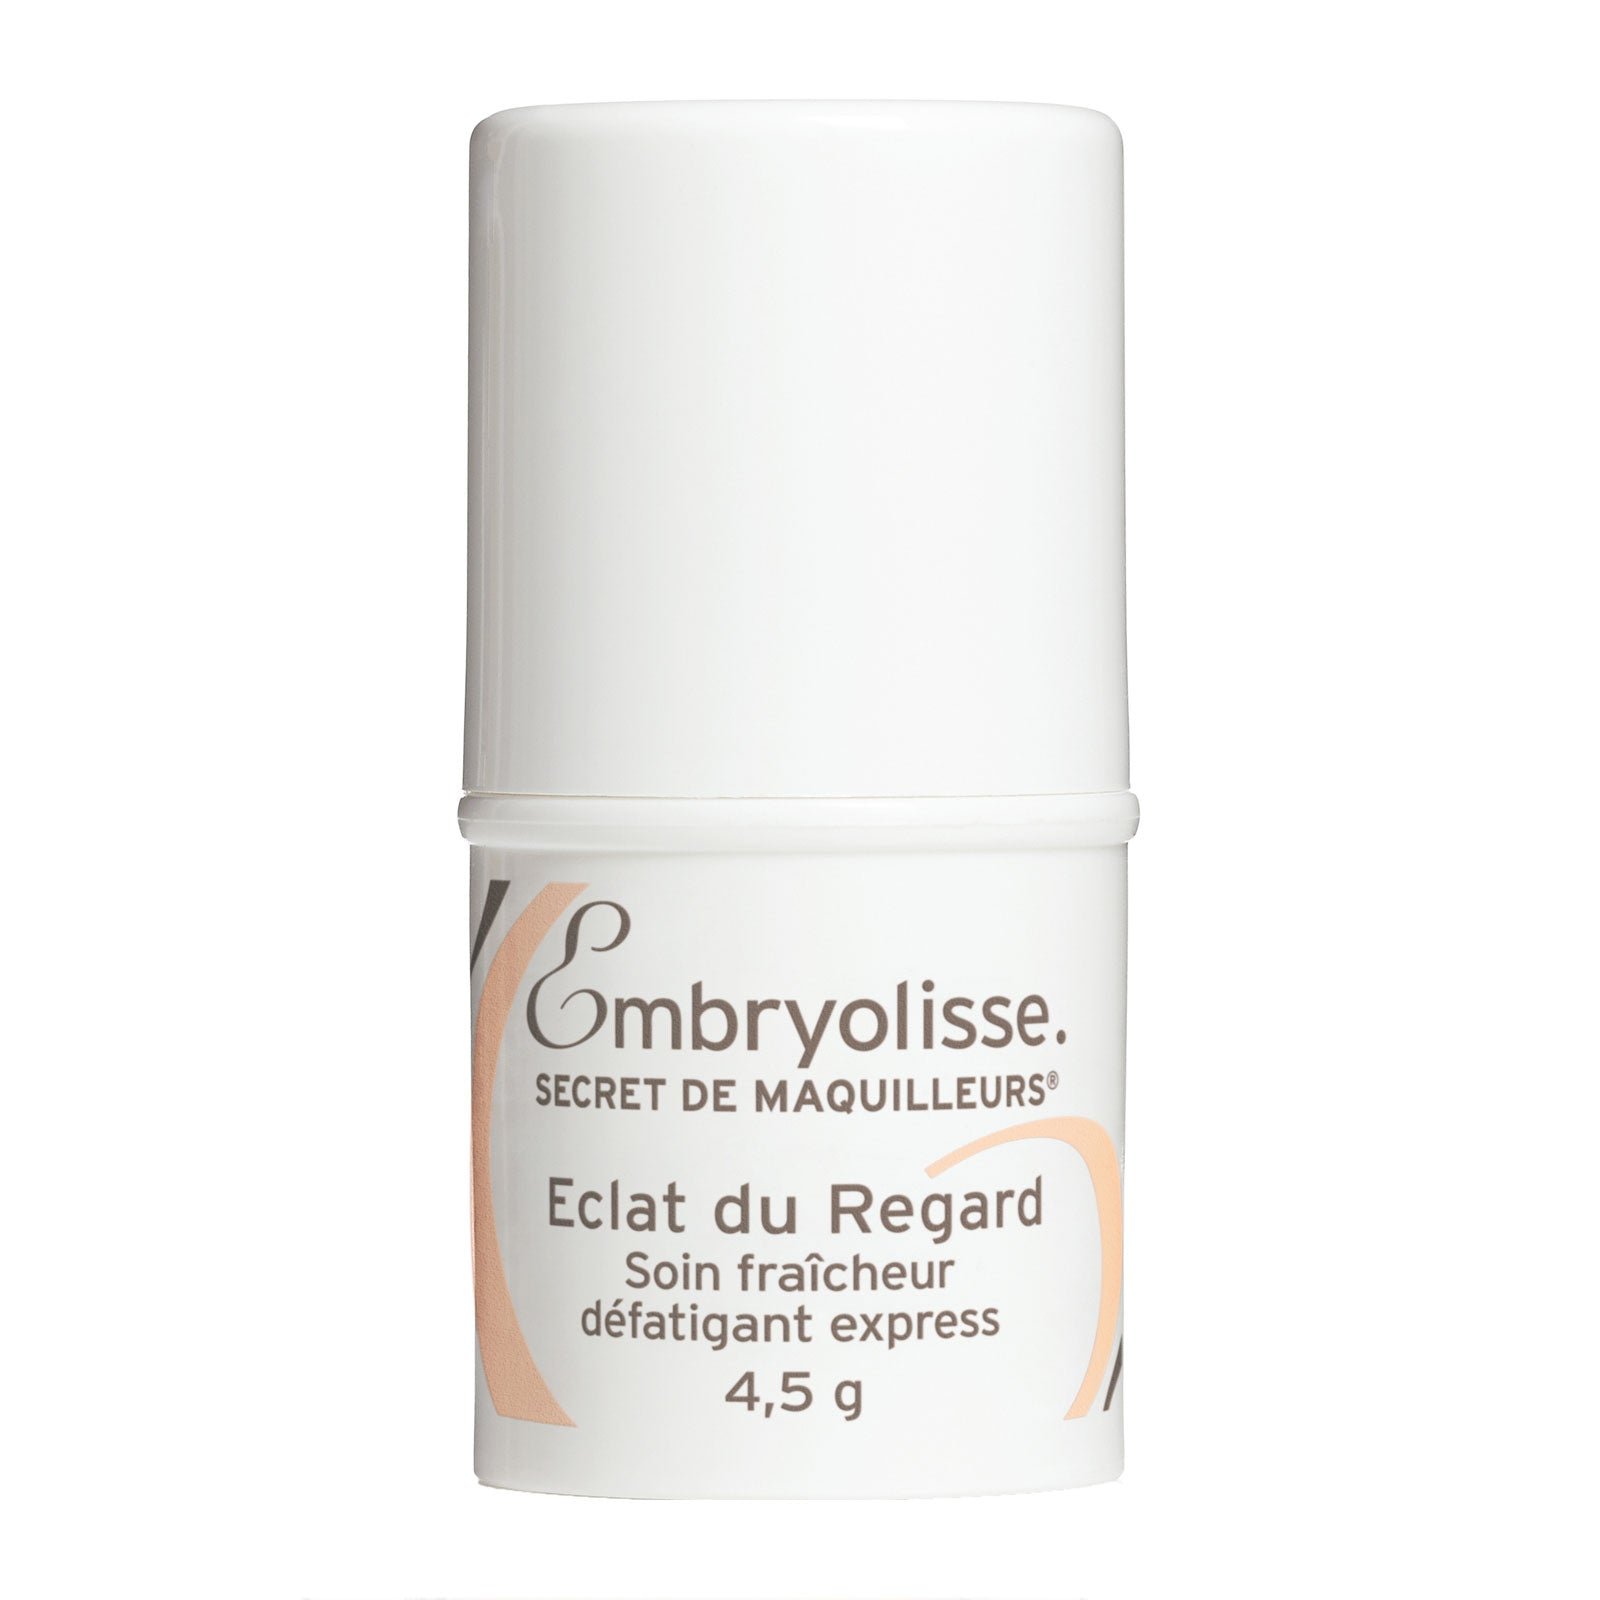 Embryolisse Radiant Eye 4.5g